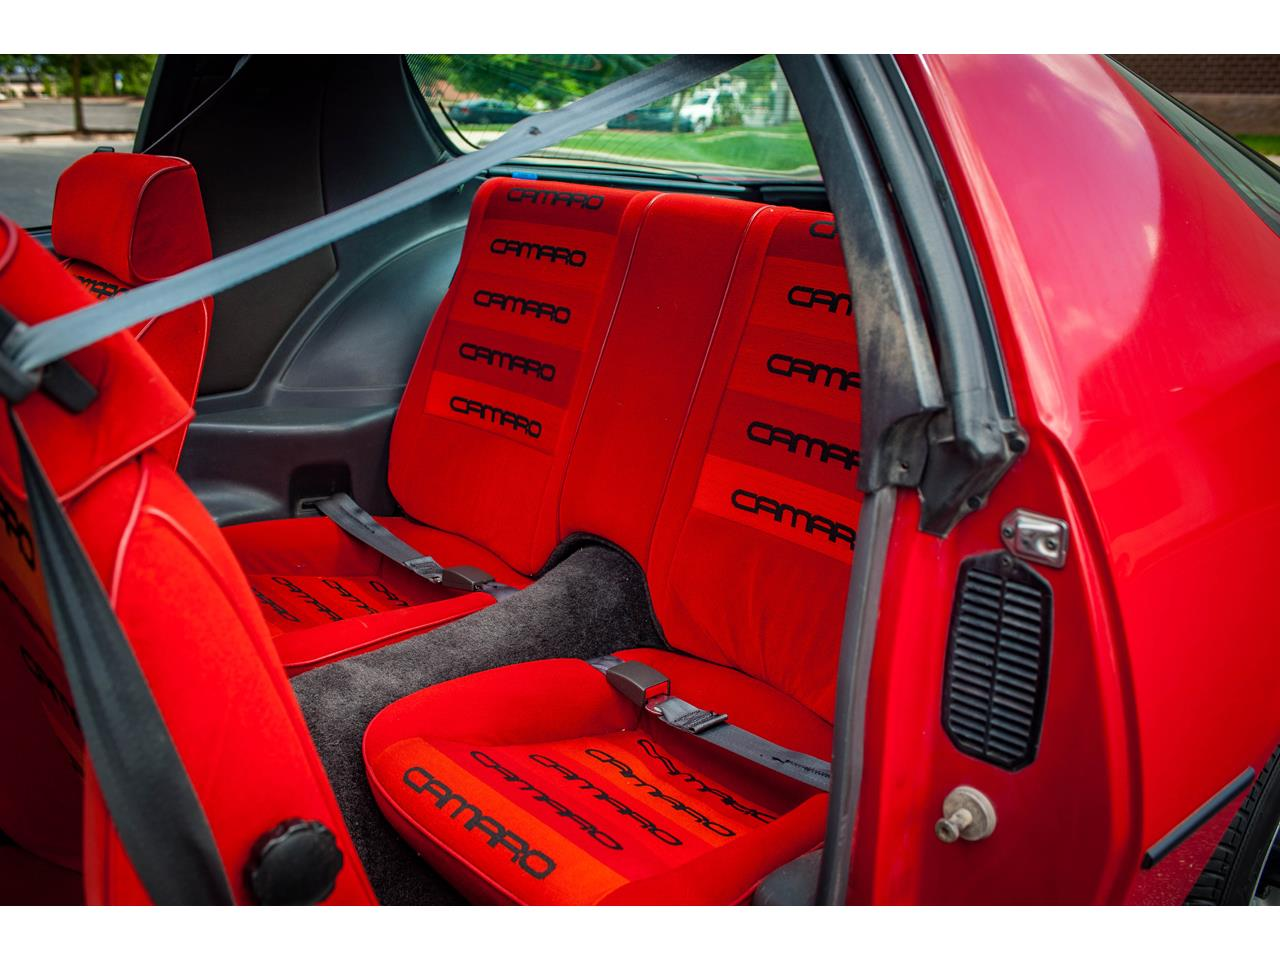 Large Picture of '84 Camaro located in O'Fallon Illinois Offered by Gateway Classic Cars - St. Louis - QB9Y